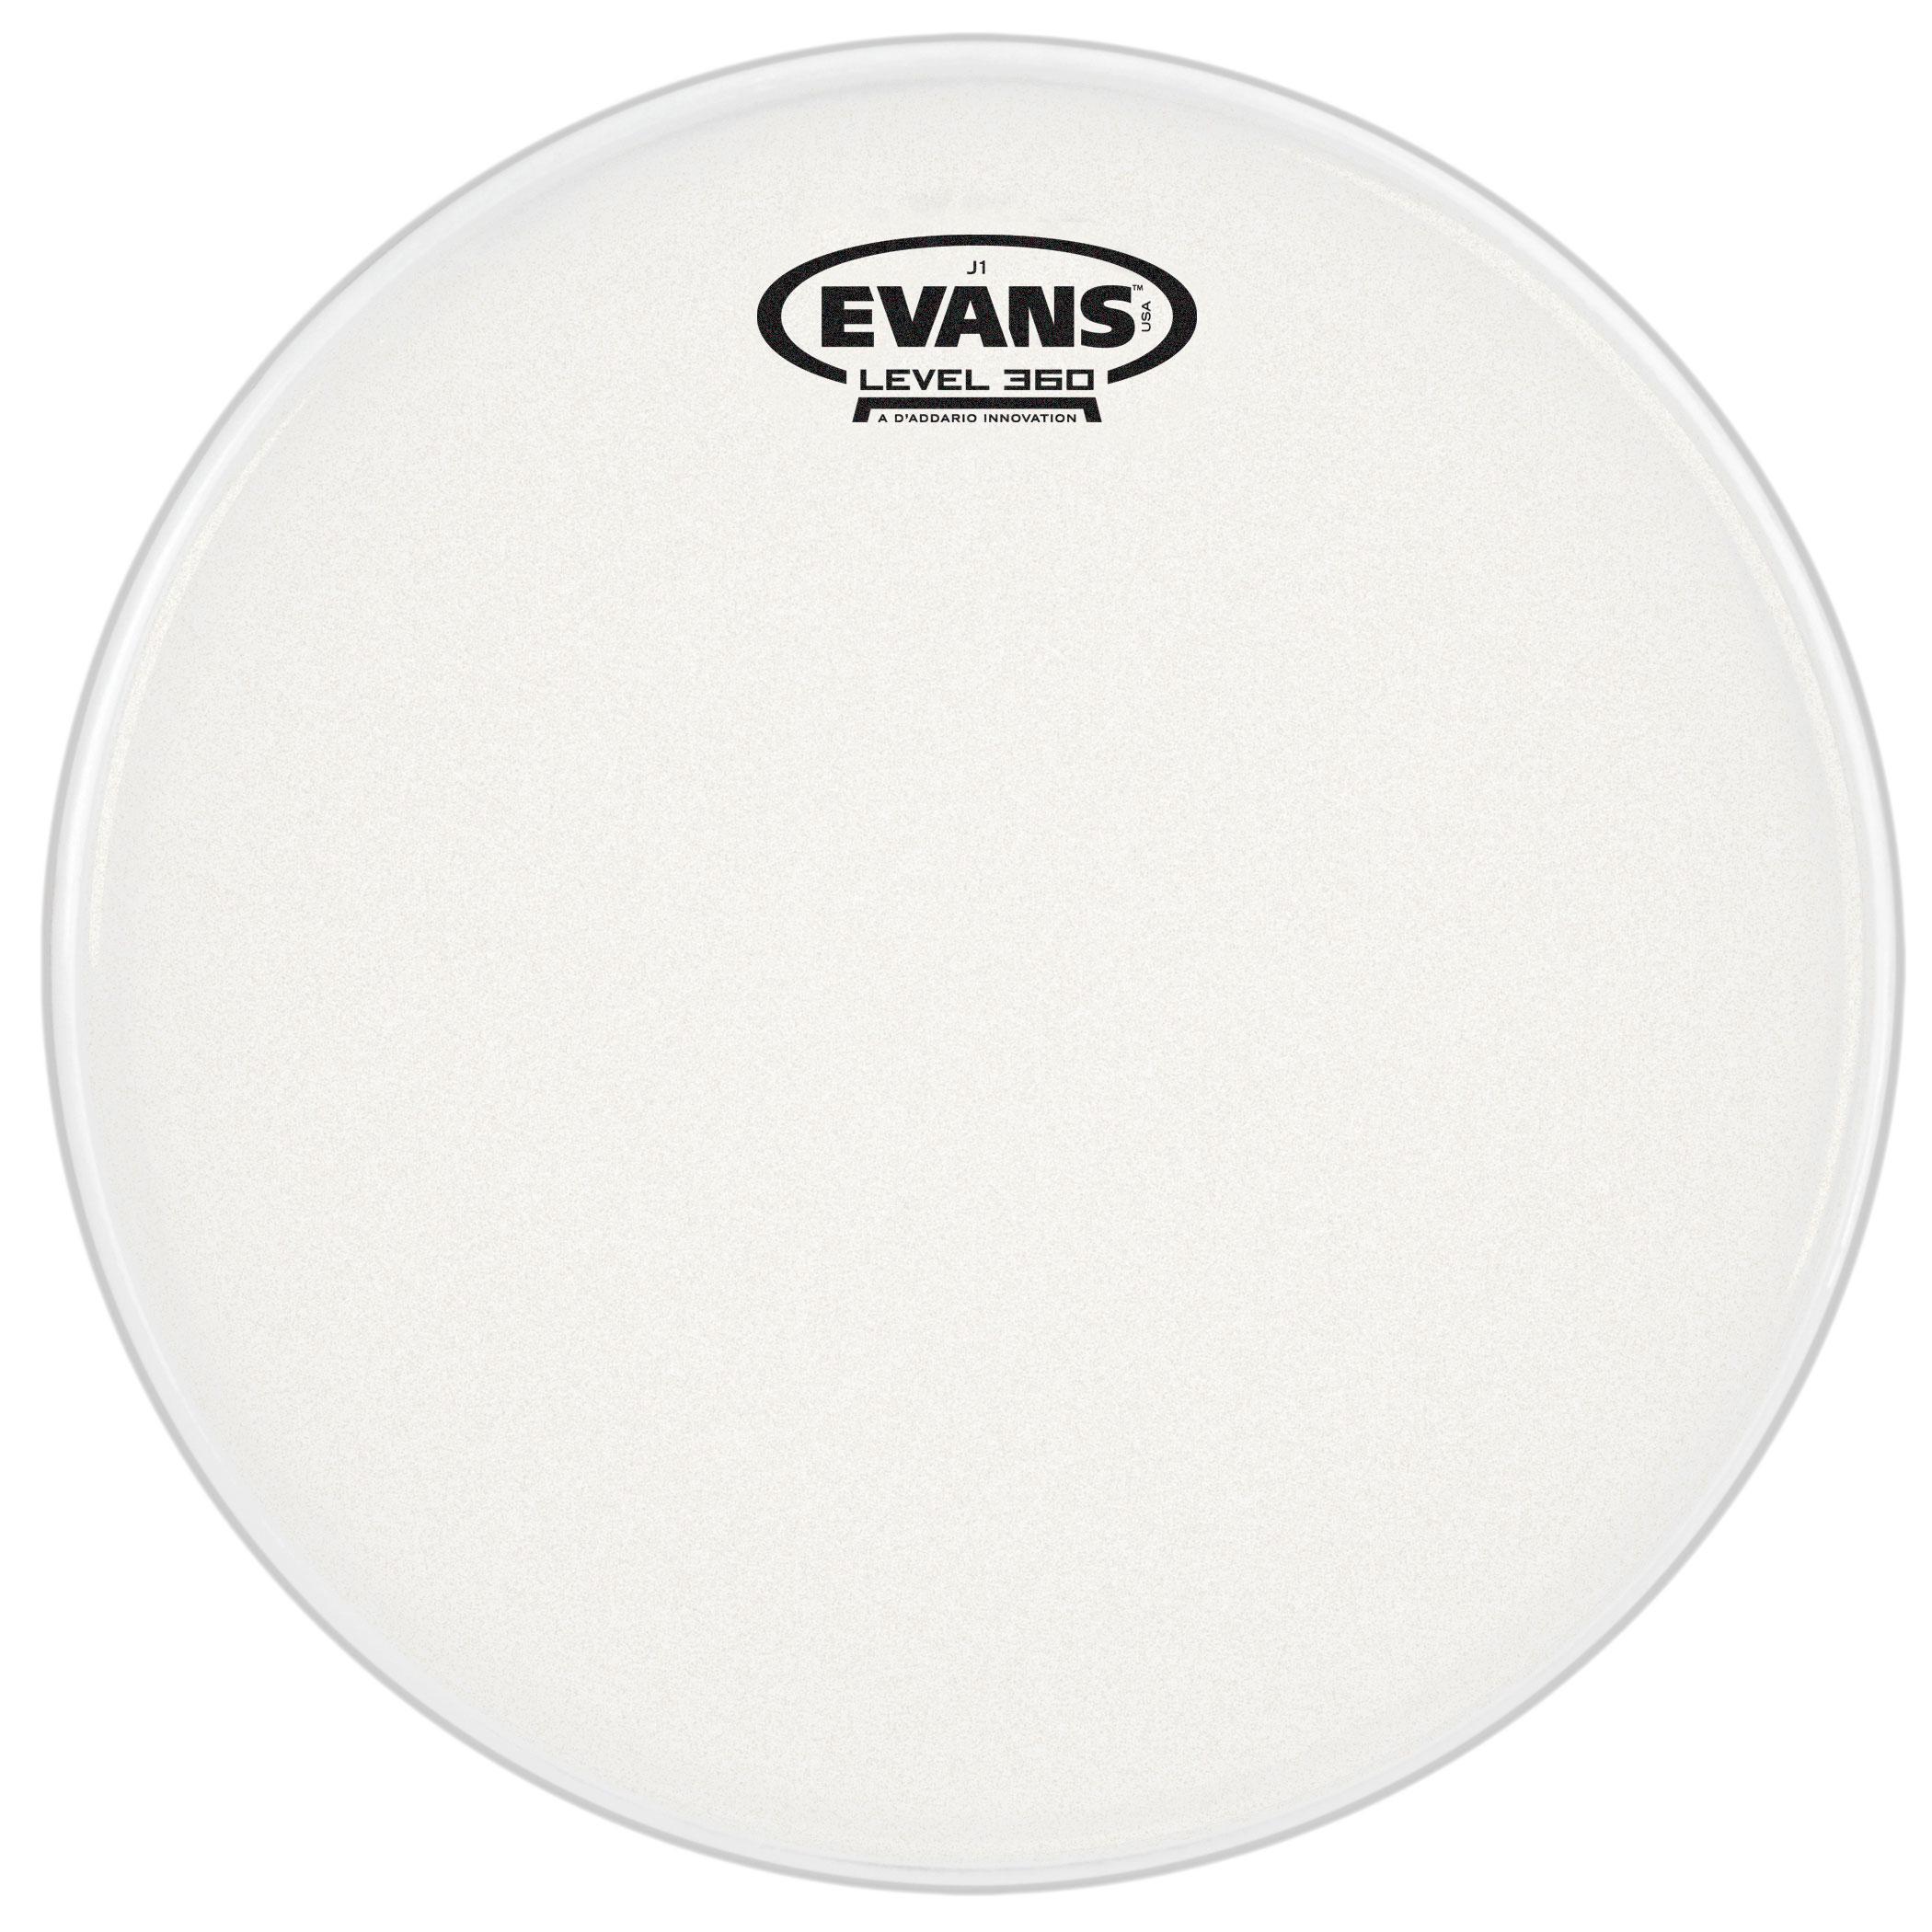 "Evans 13"" J1 Etched Head"